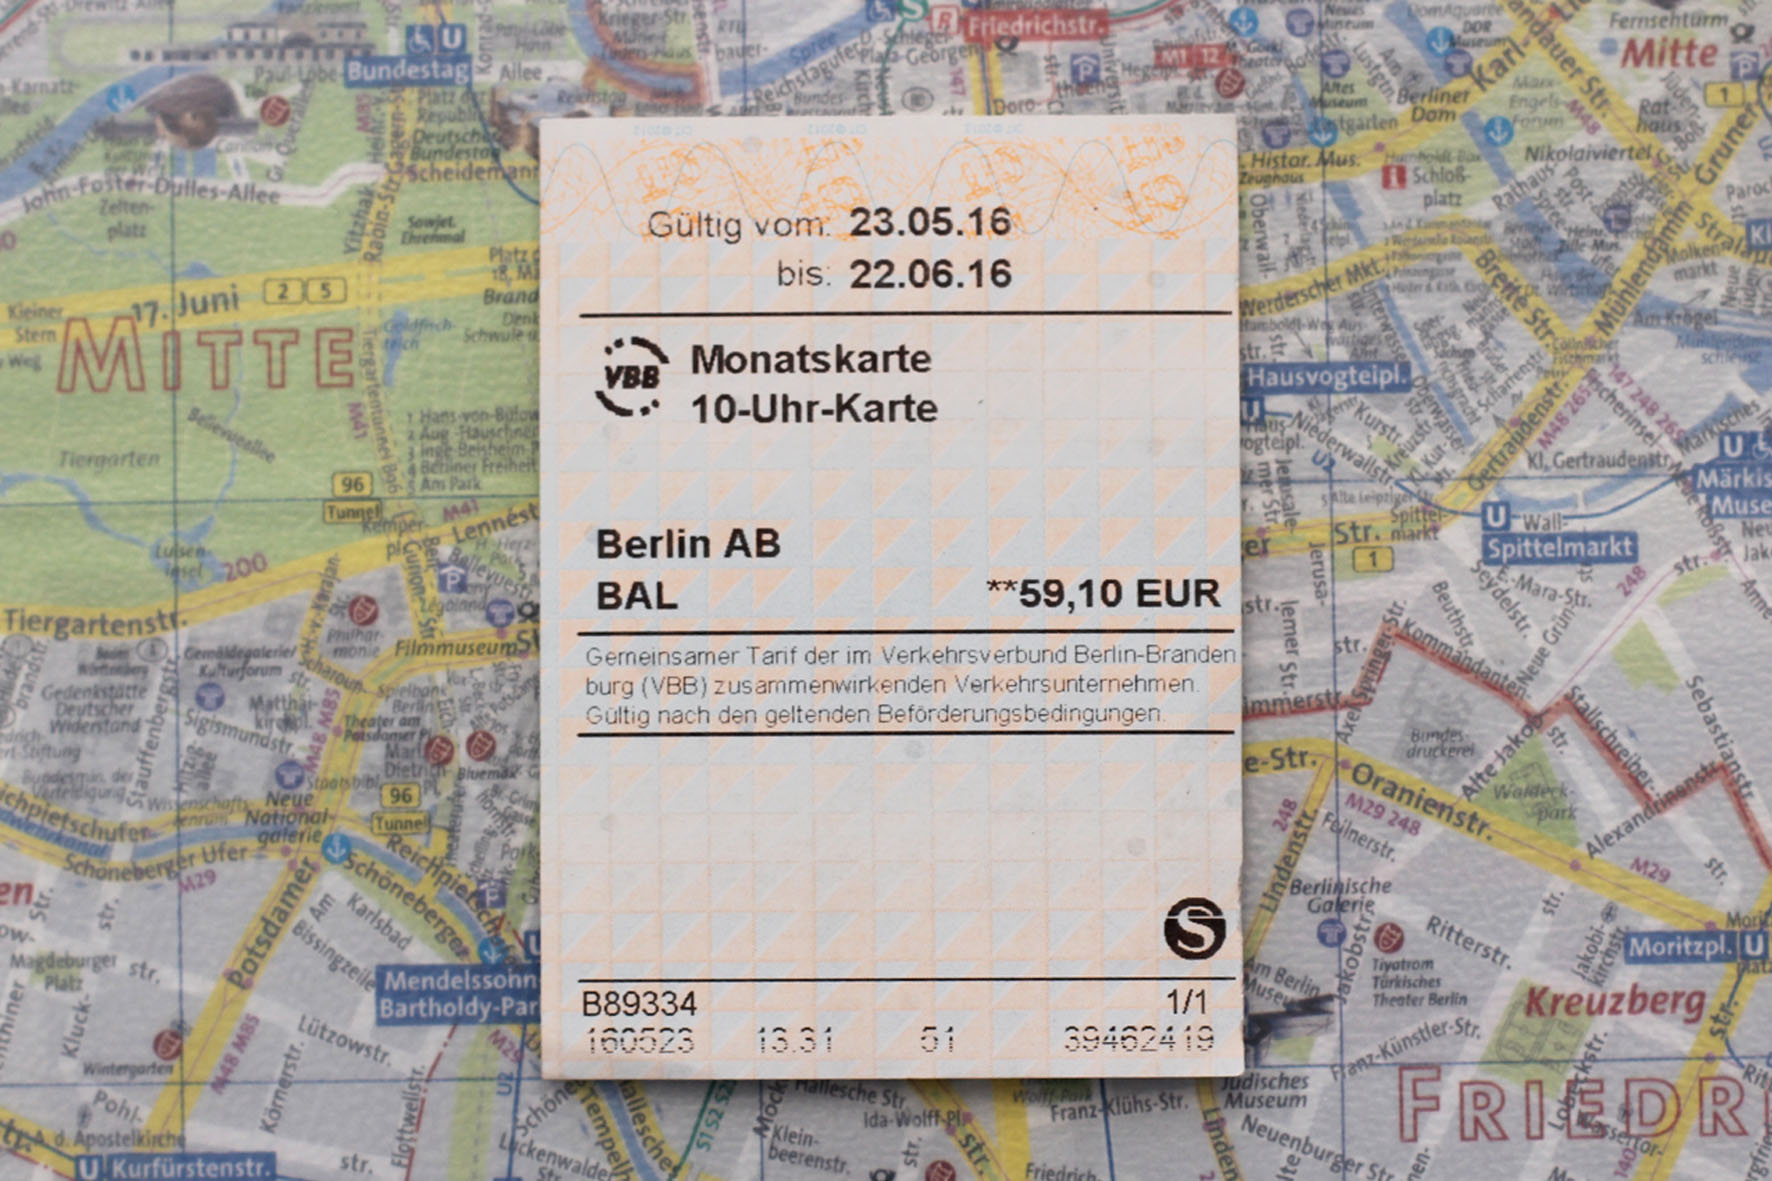 bvg 10 uhr karte Getting Caught Without a Valid Ticket on Berlin Public Transport